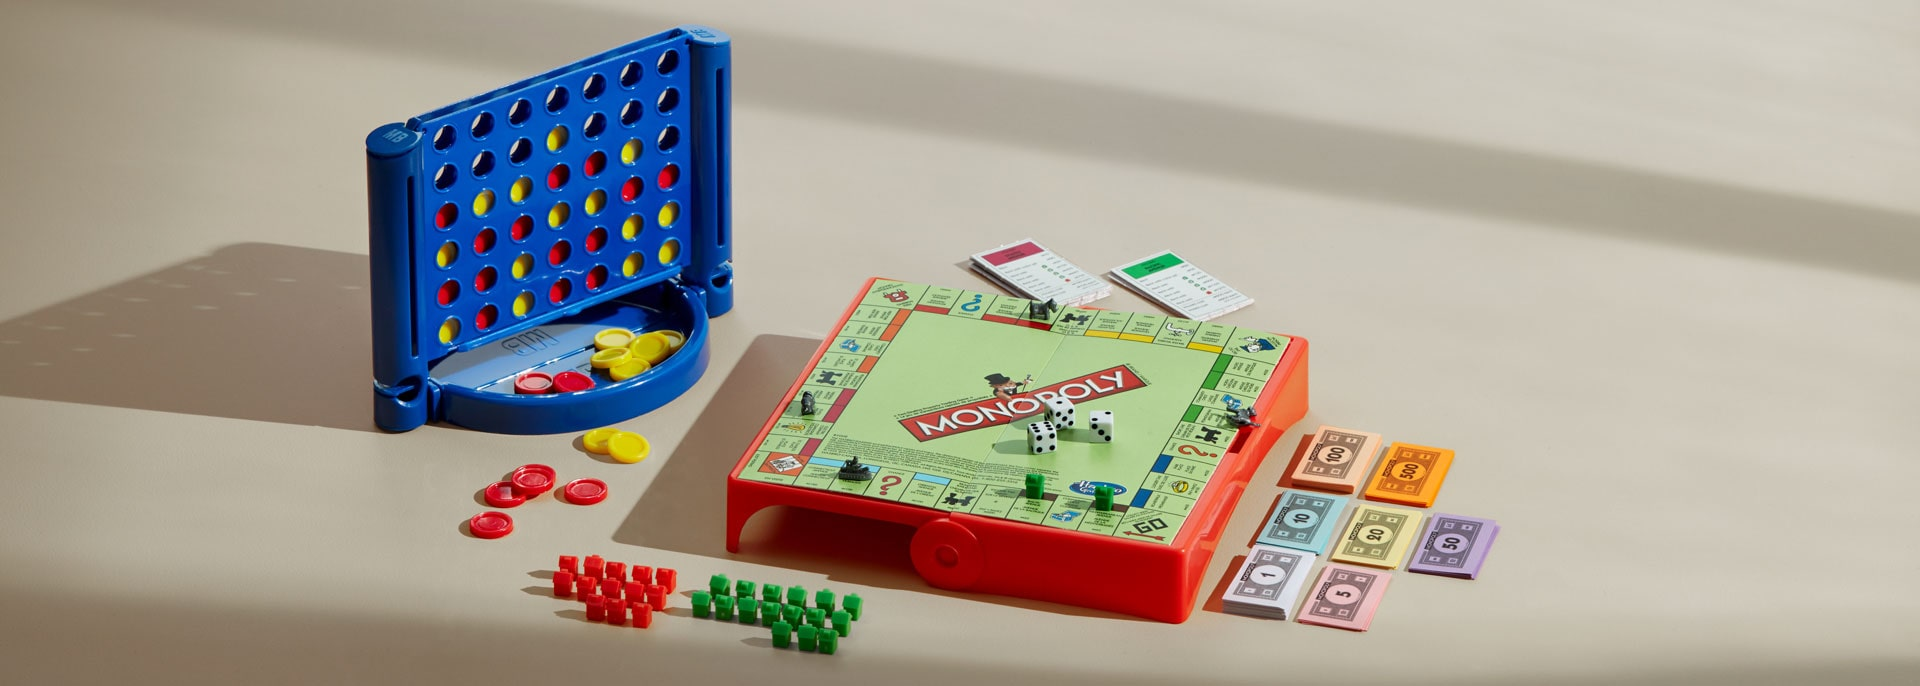 Classic board games including Monopoly and Connect Four